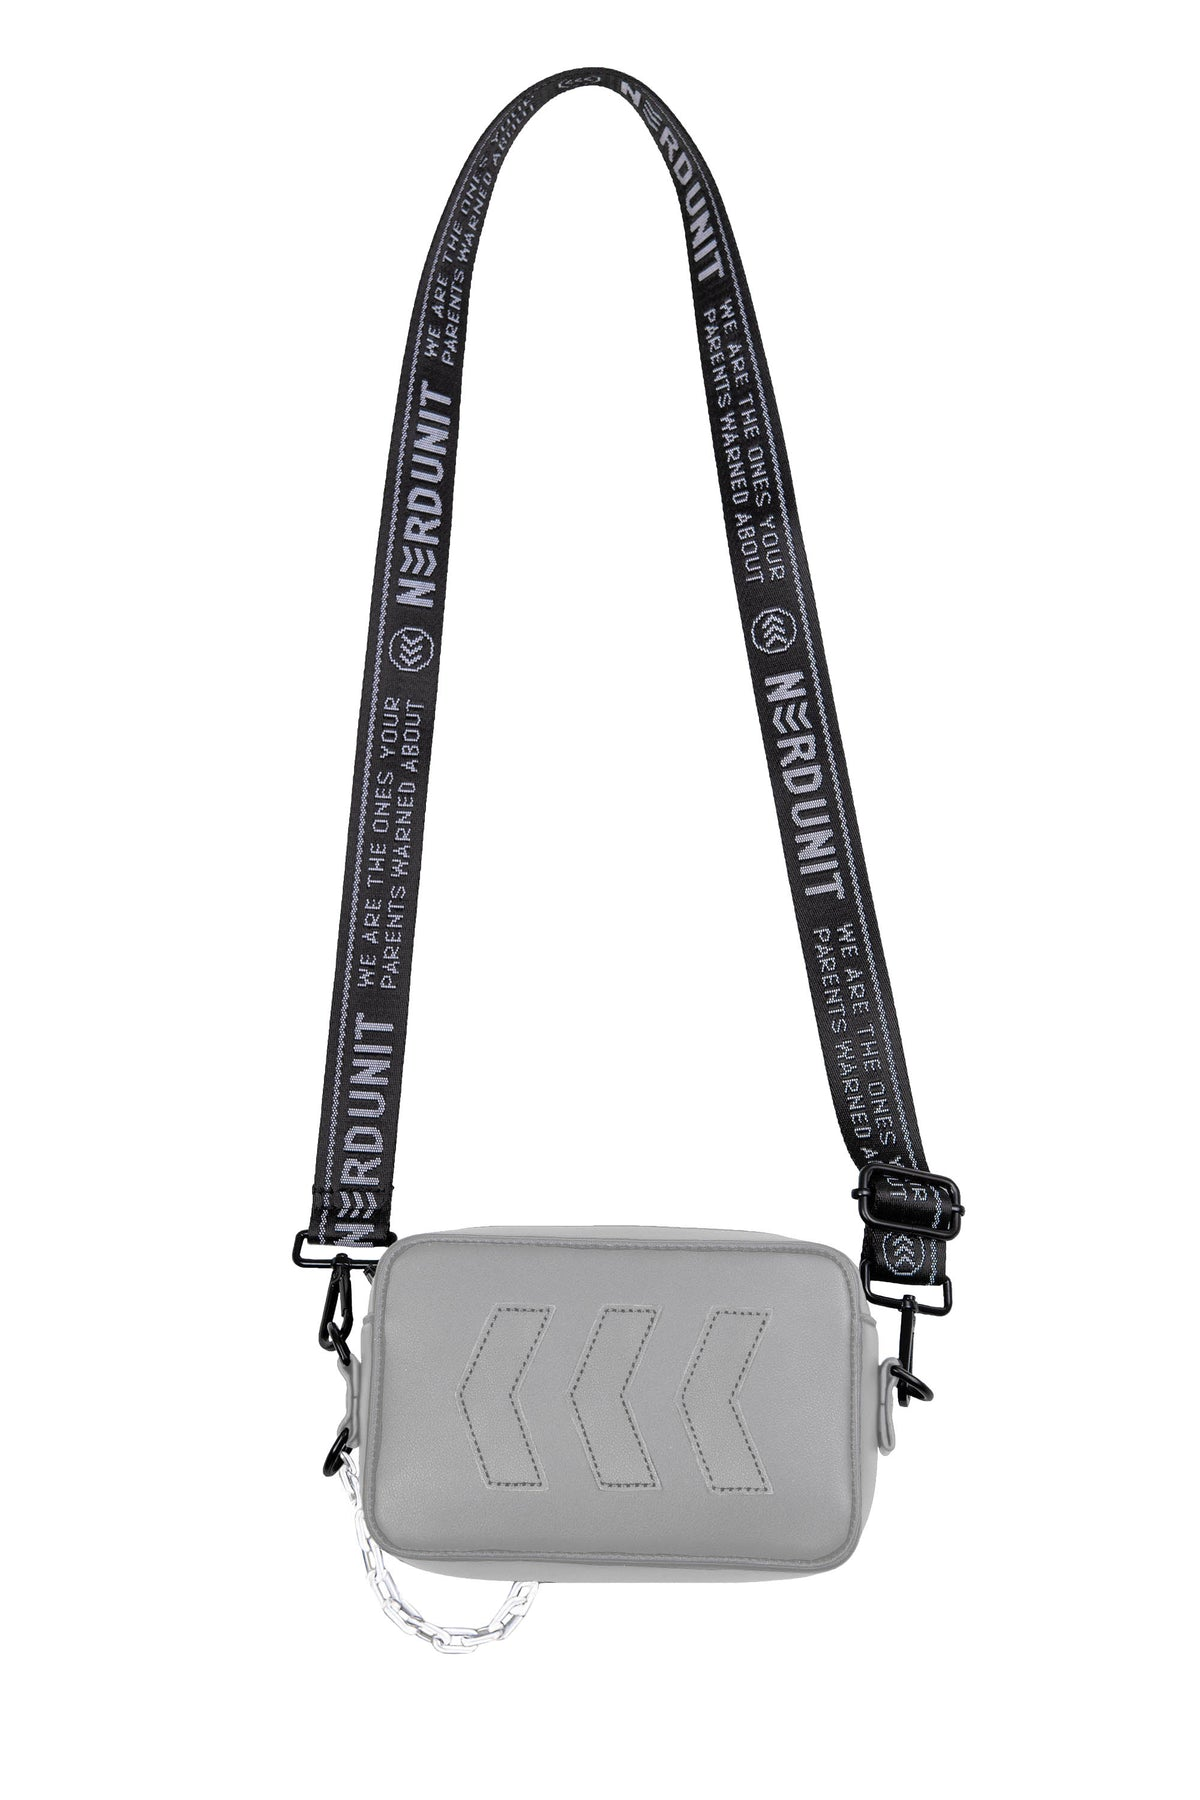 MIRROR SLING BAG | SILVER